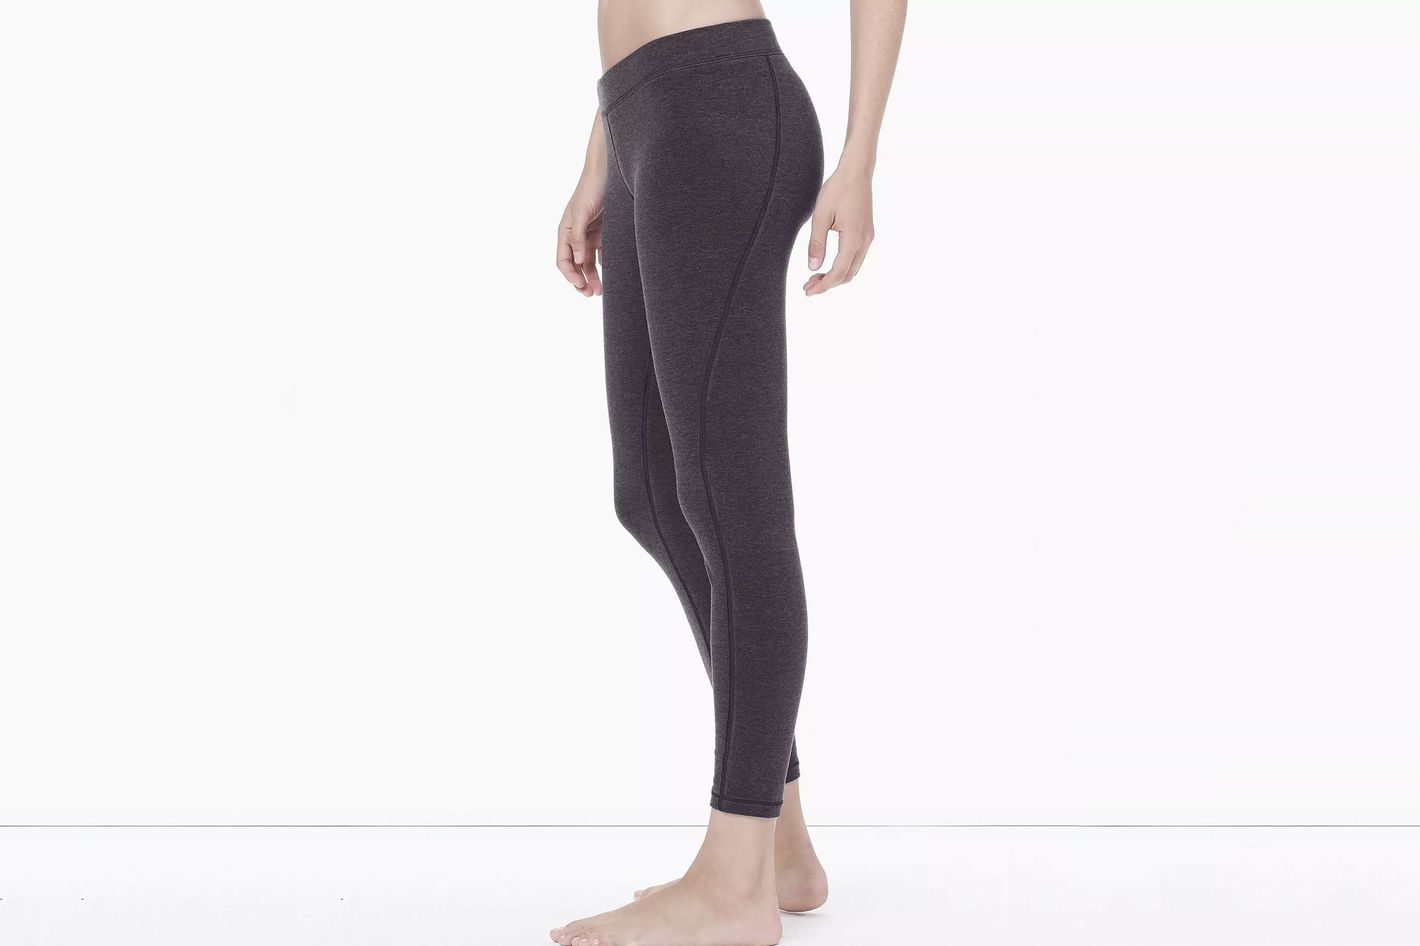 James Perse Seamless Yoga Pant